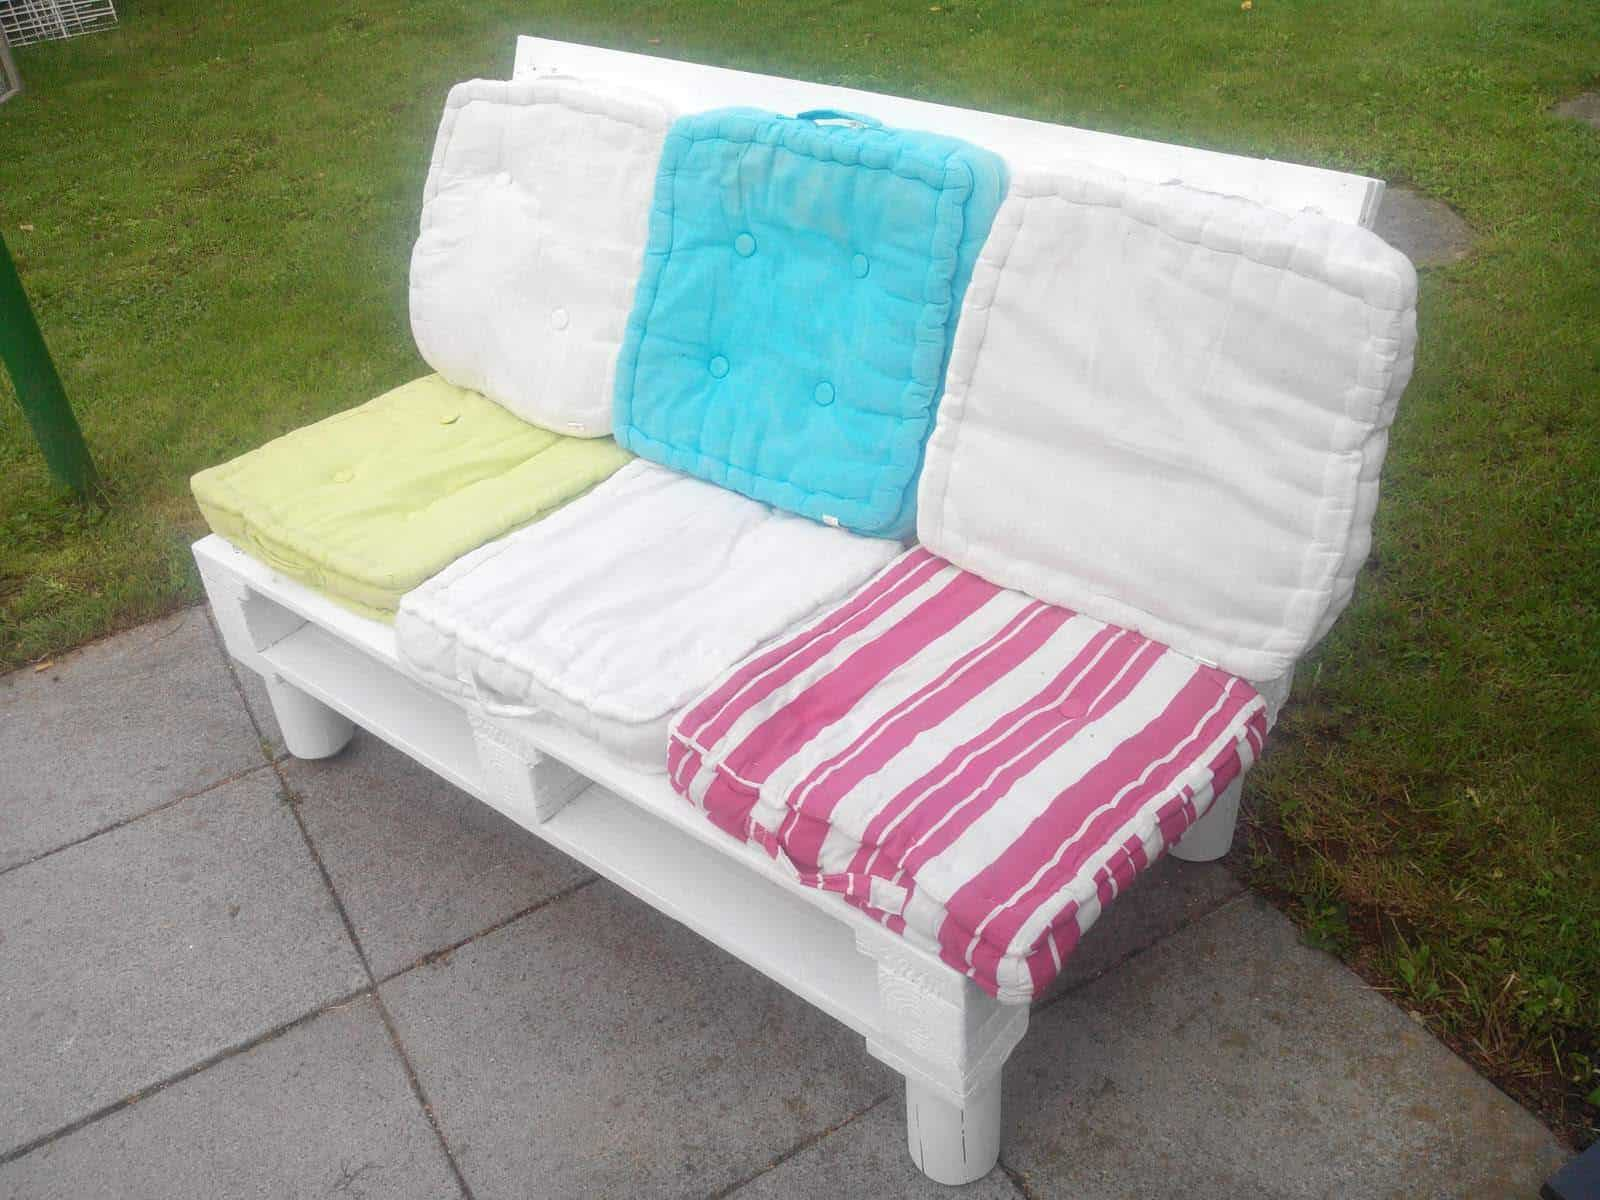 Canapé Shabby Chic shabby chic sofa from recycled pallets • 1001 pallets